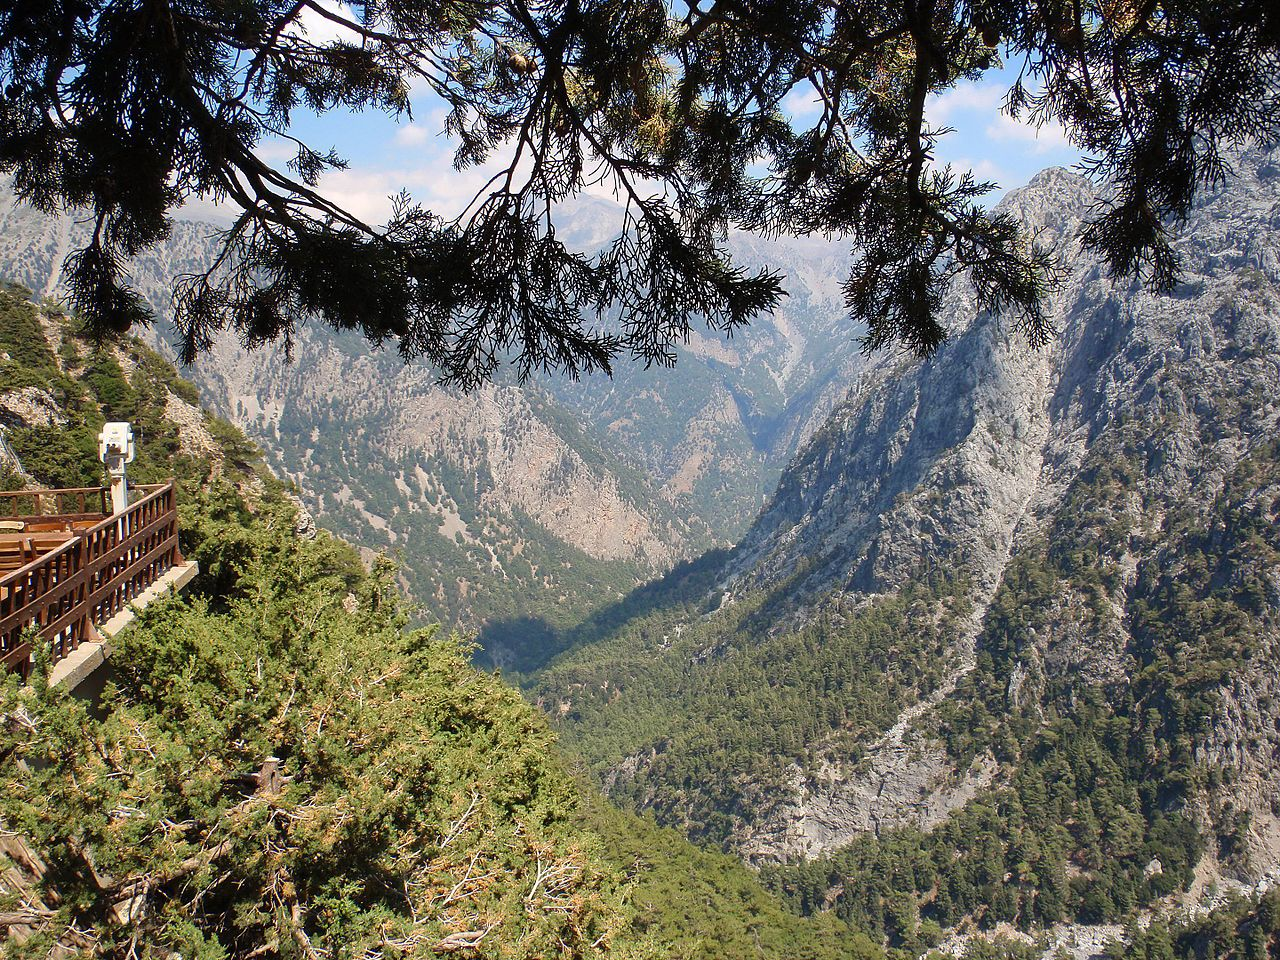 Samaria Gorge View from Above- Chania, Crete, Greece- Jimzoun, Samaria Gorge - Crete, Greece (3), CC BY-SA 4.0